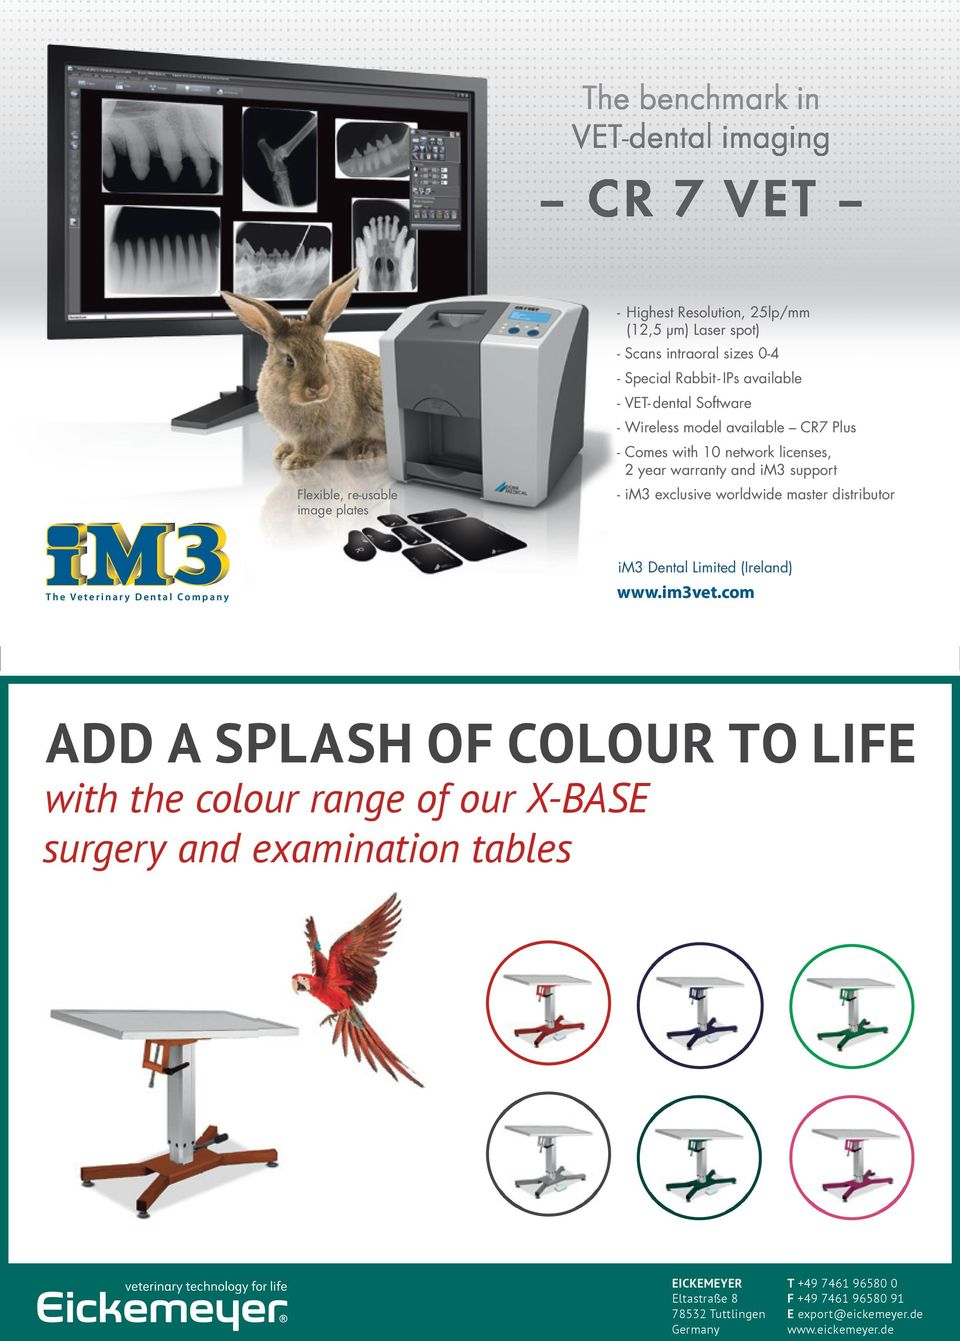 worldwide master distributor The Veterinary Dental Company im3 Dental Limited (Ireland) www.im3vet.